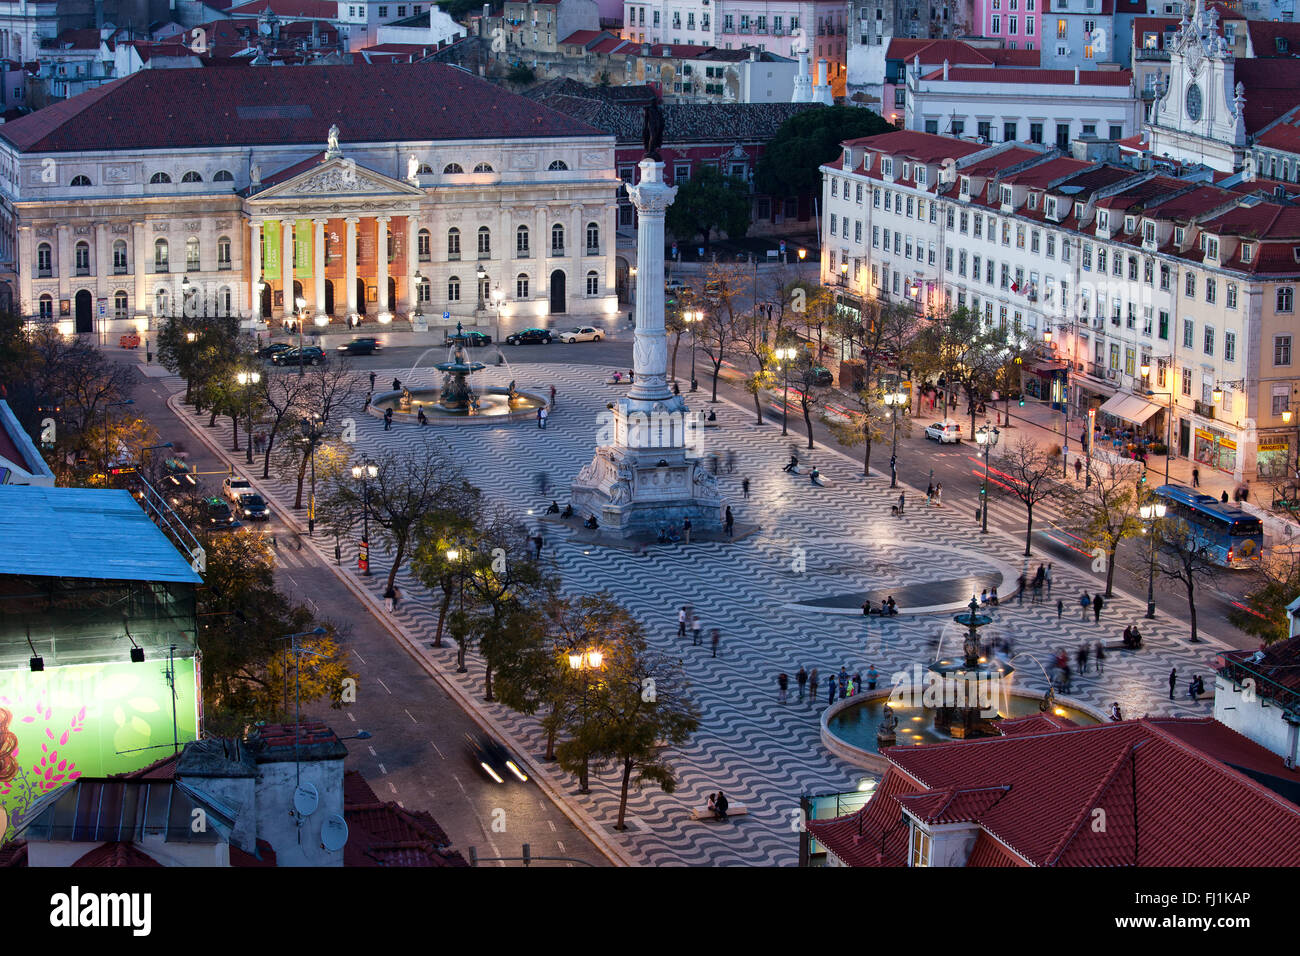 Rossio Square at night, city centre of Lisbon, Portugal, Europe - Stock Image